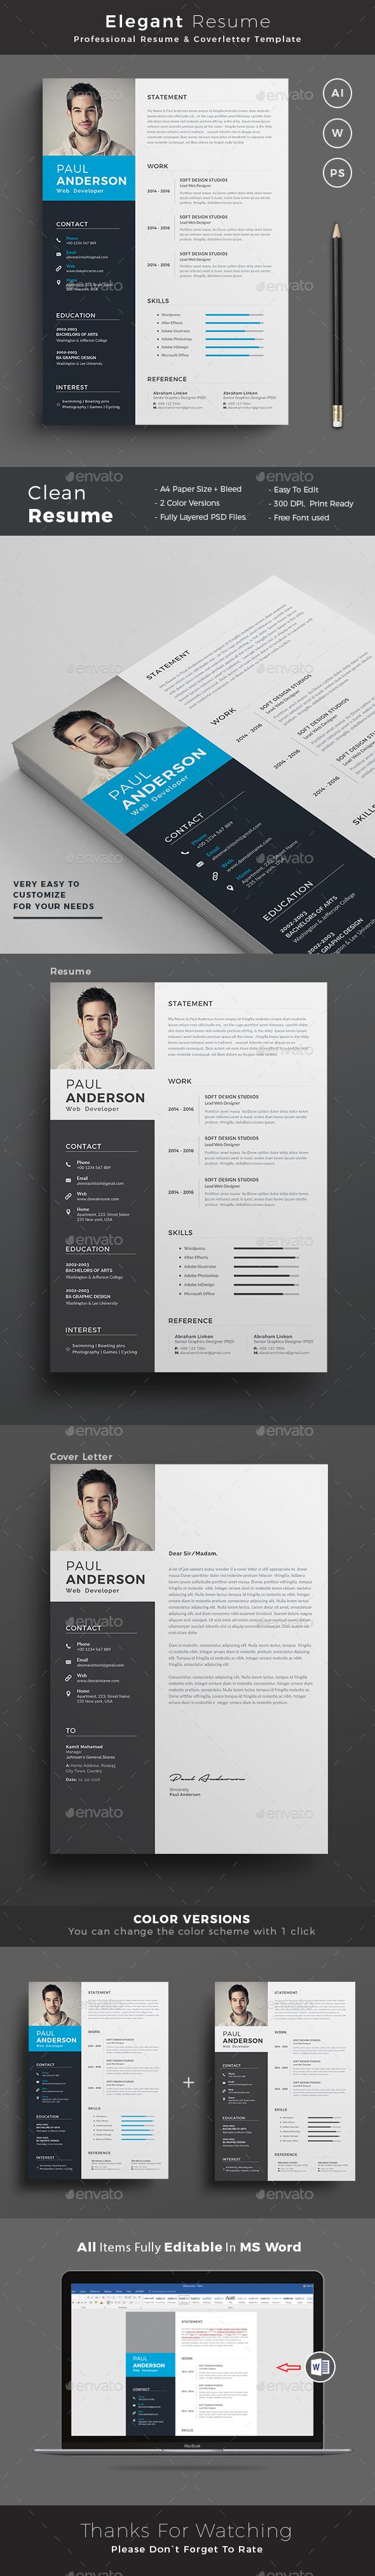 receptionist sample resume%0A Resume Template PSD  AI  MS Word